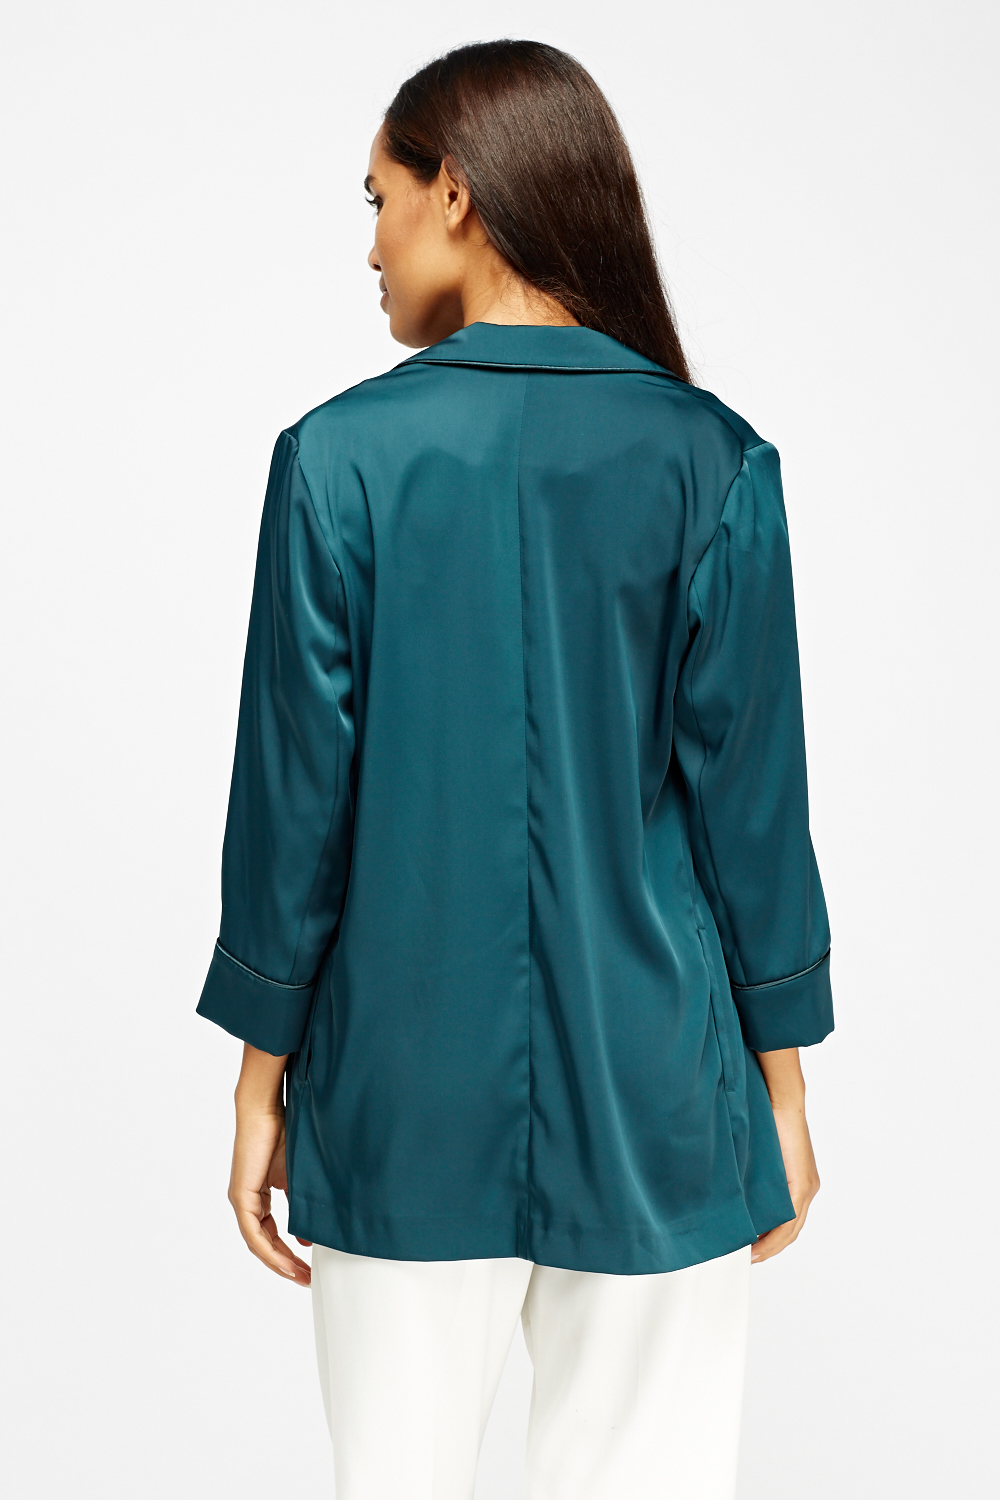 Find great deals on eBay for forest green cardigan. Shop with confidence.